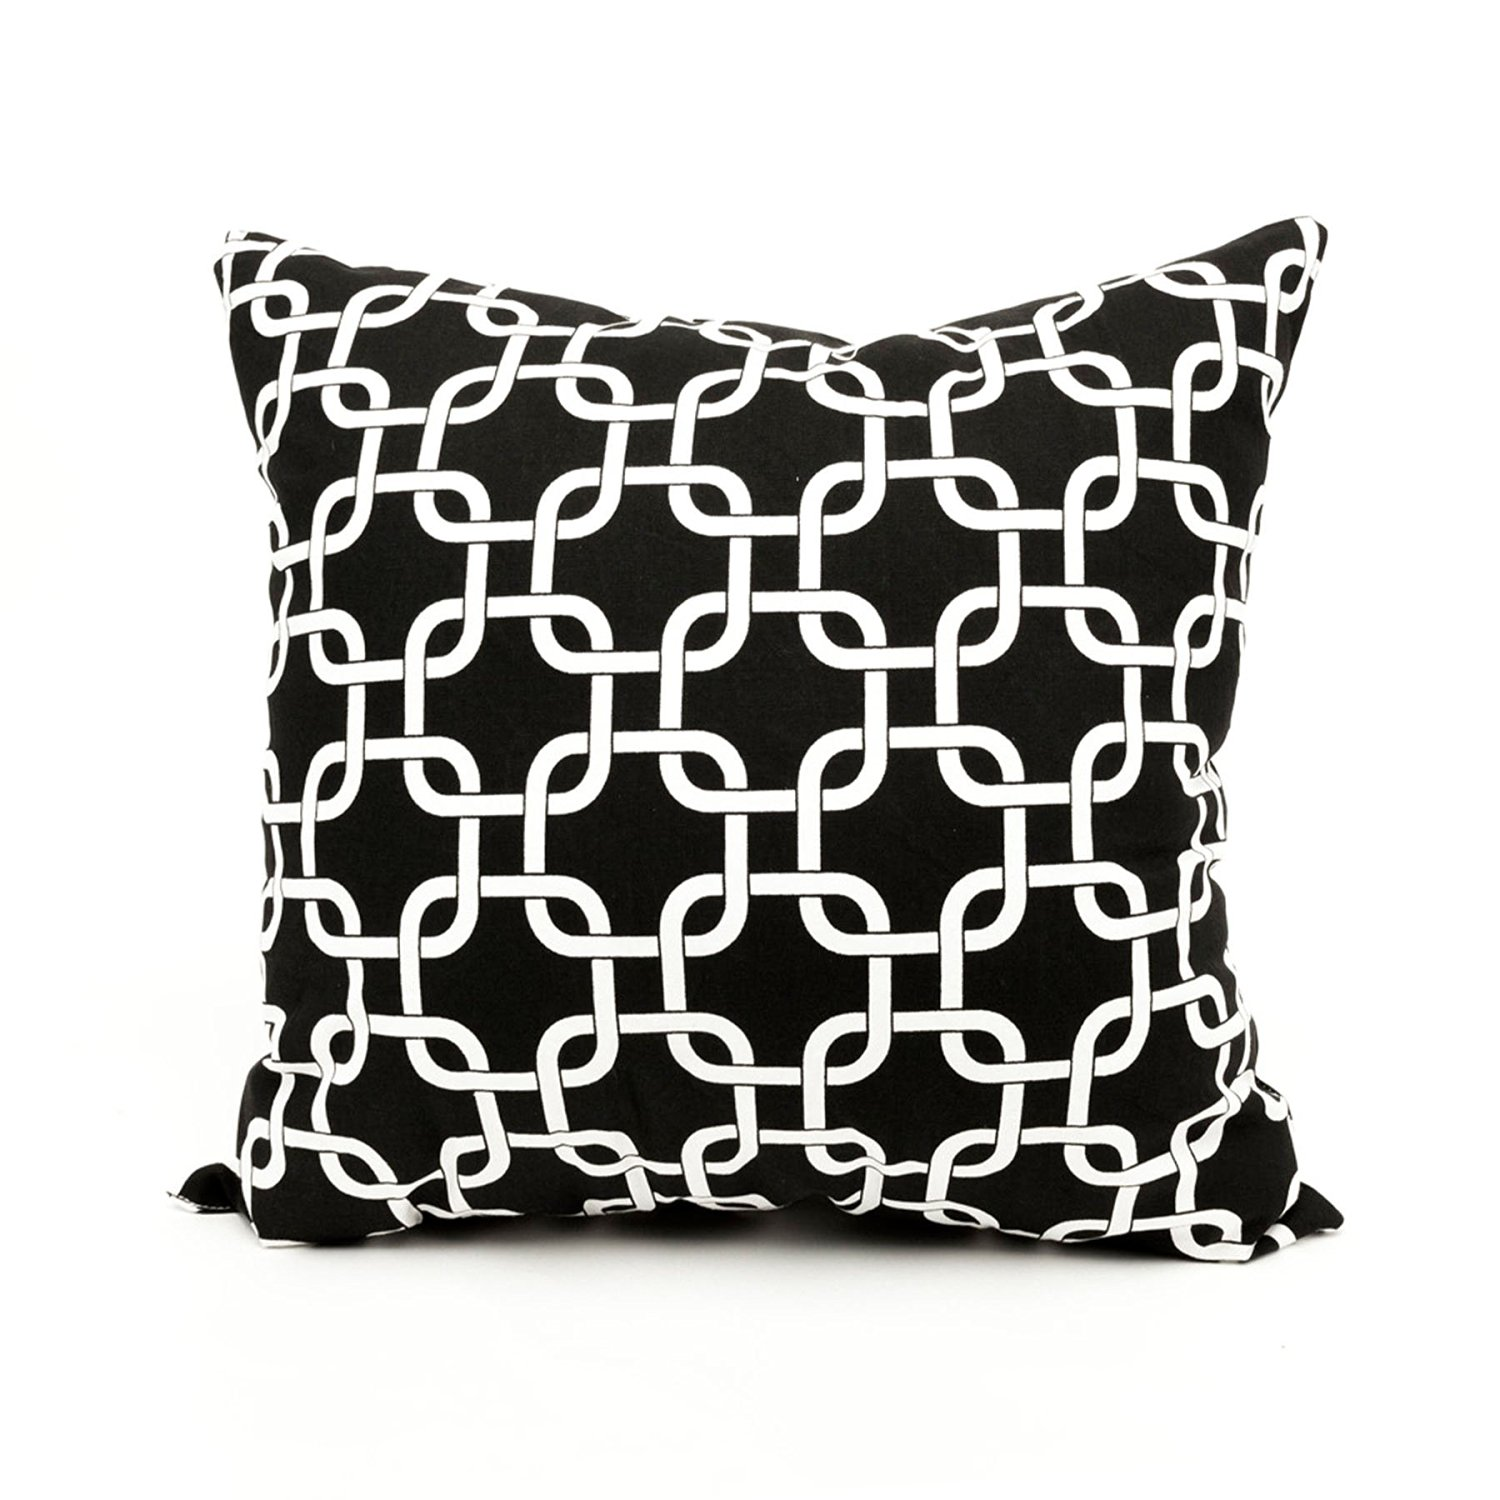 "Majestic Home Goods Black Links Indoor / Outdoor Large Pillow 20"" L x 8"" W x 20"" H"